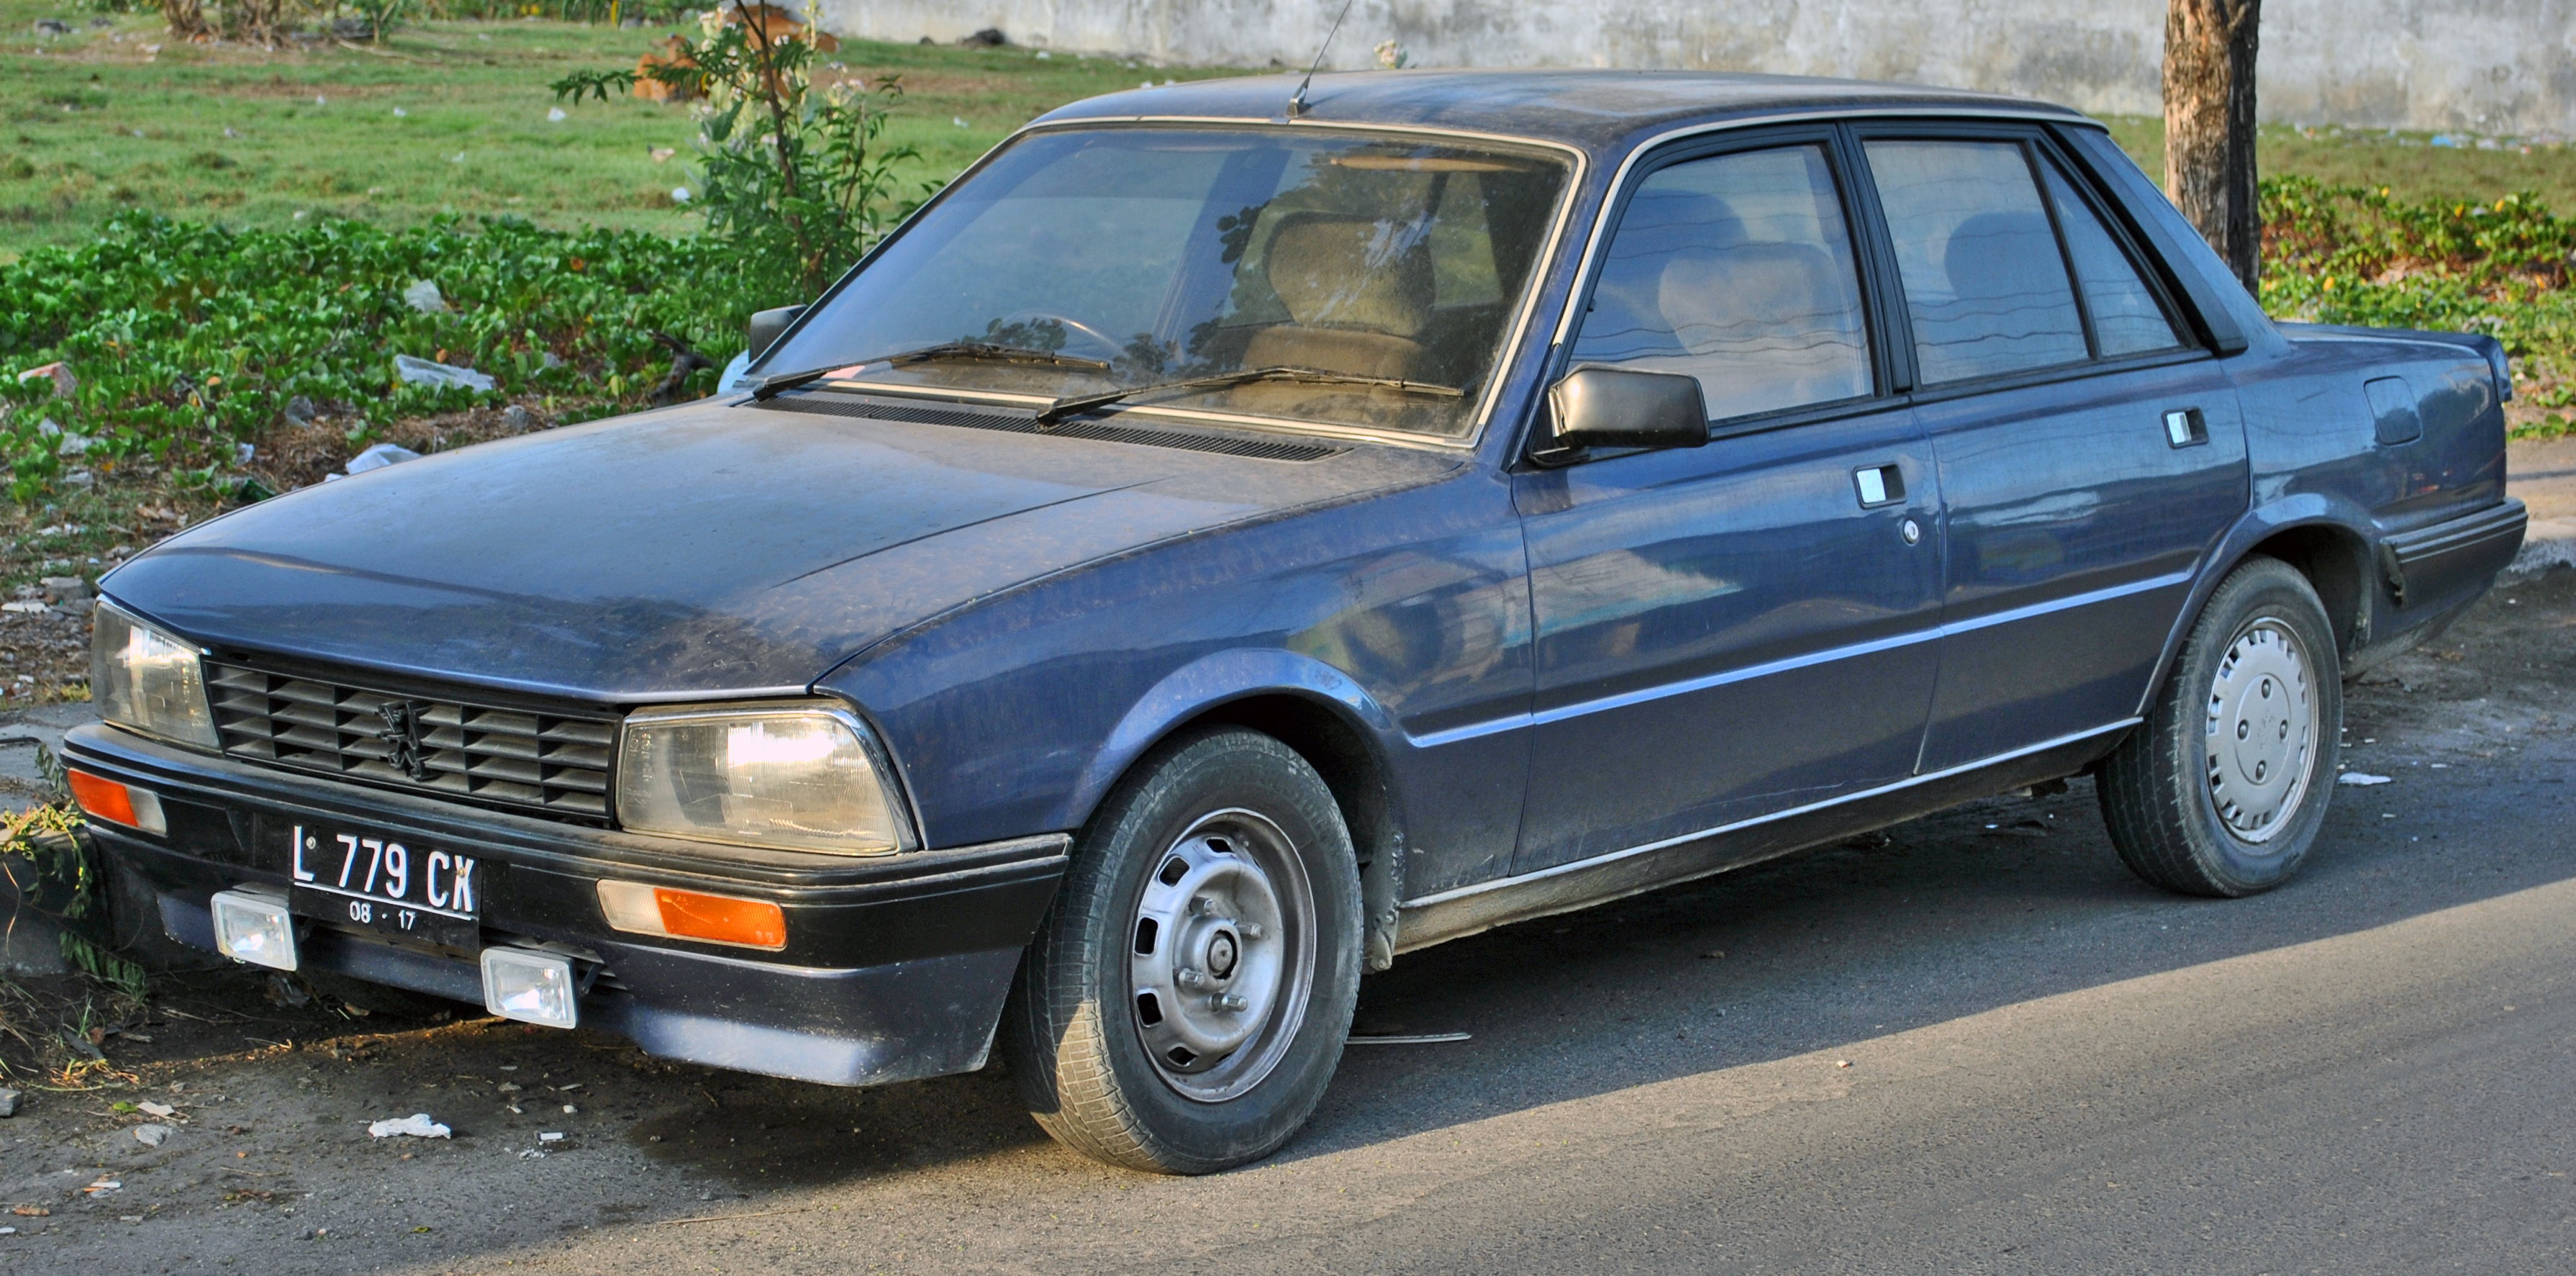 file peugeot 505 gti automatic front wikimedia commons. Black Bedroom Furniture Sets. Home Design Ideas